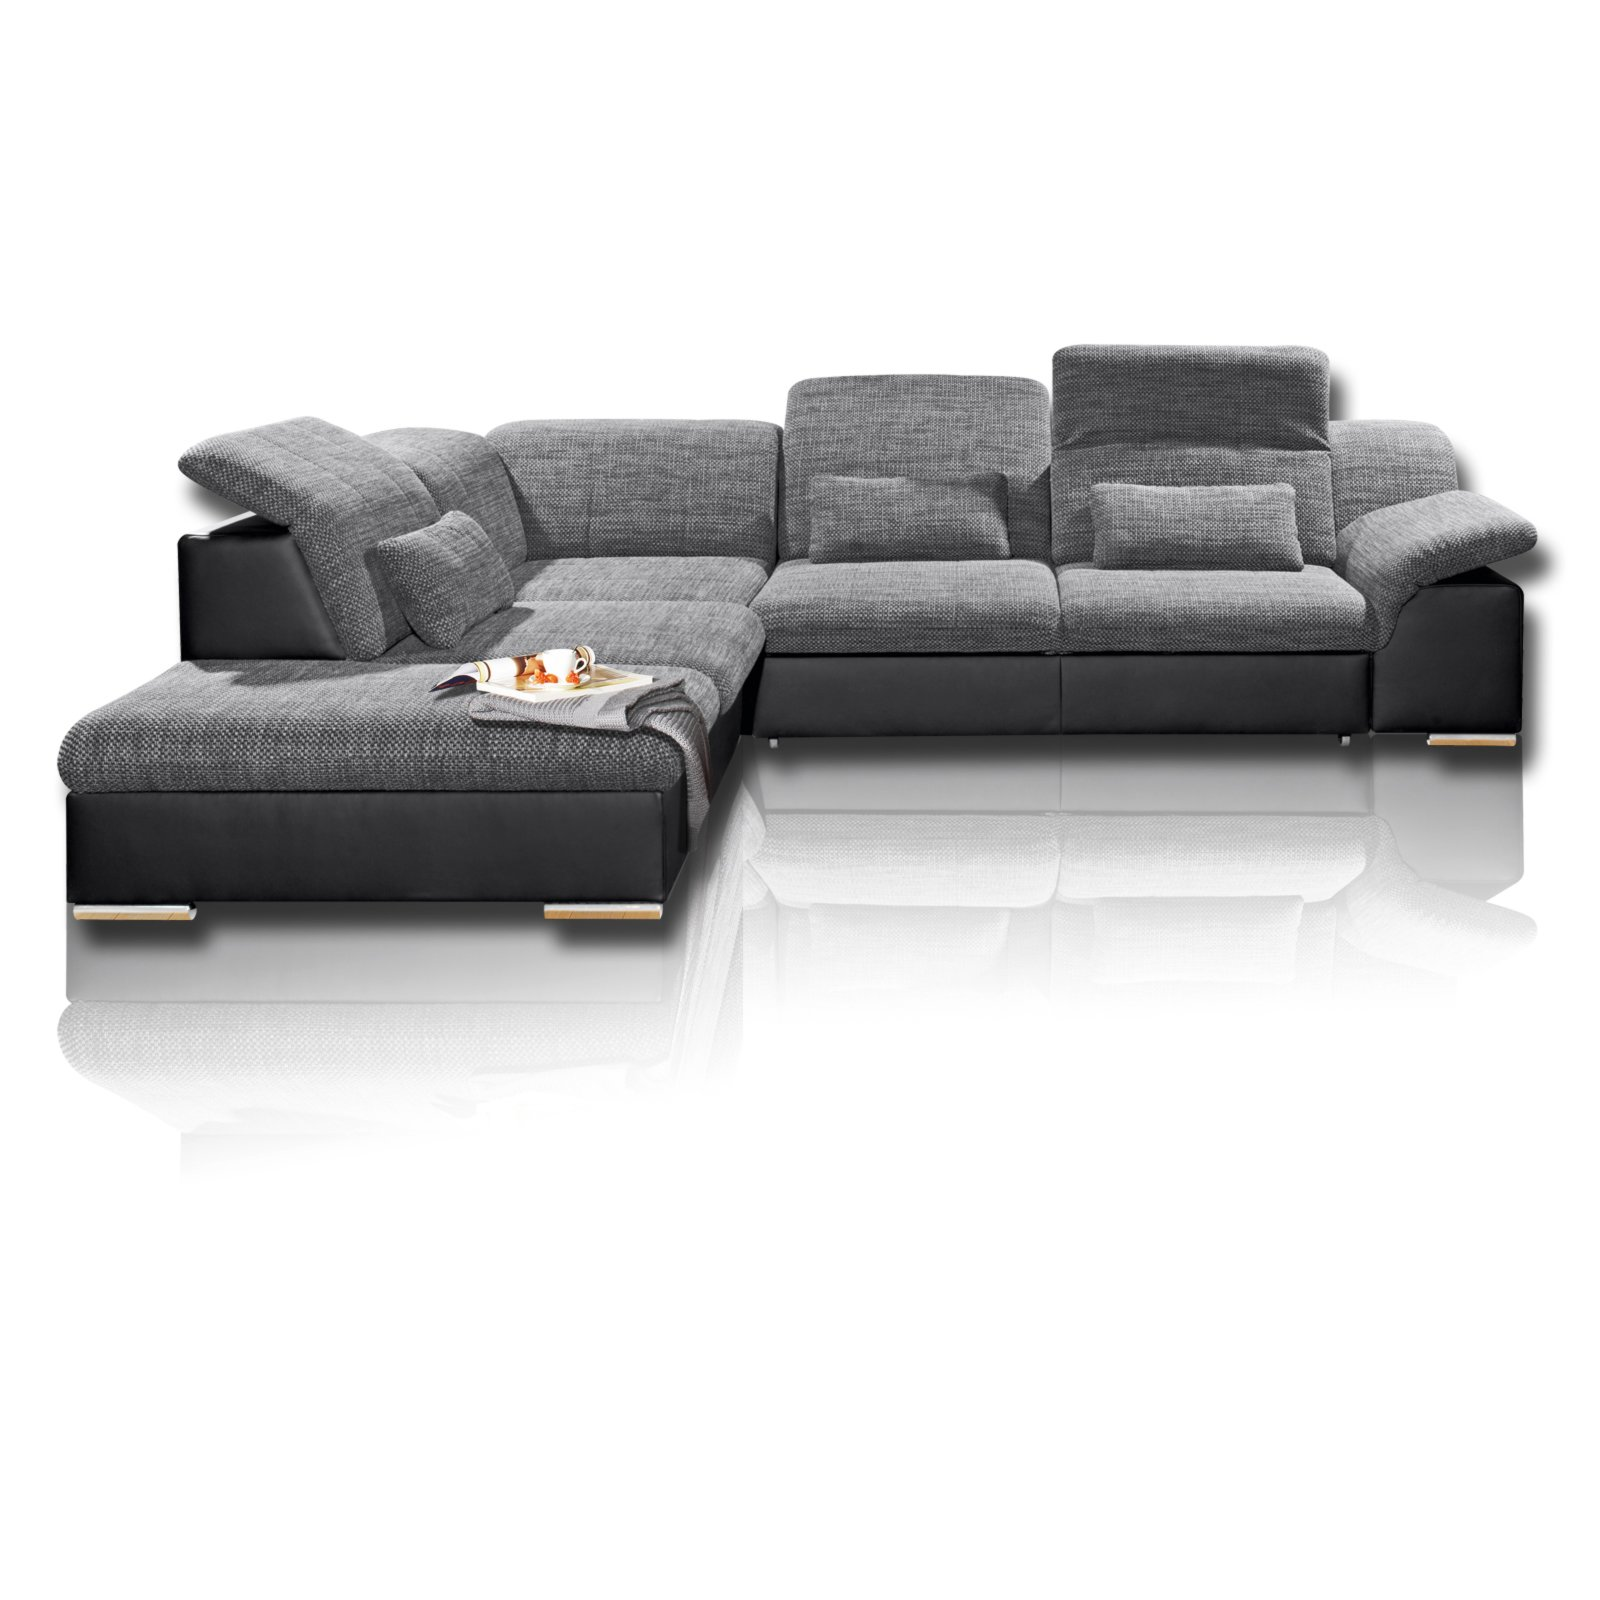 ecksofa schwarz dunkelgrau mit funktionen ecksofas l form sofas couches m bel. Black Bedroom Furniture Sets. Home Design Ideas